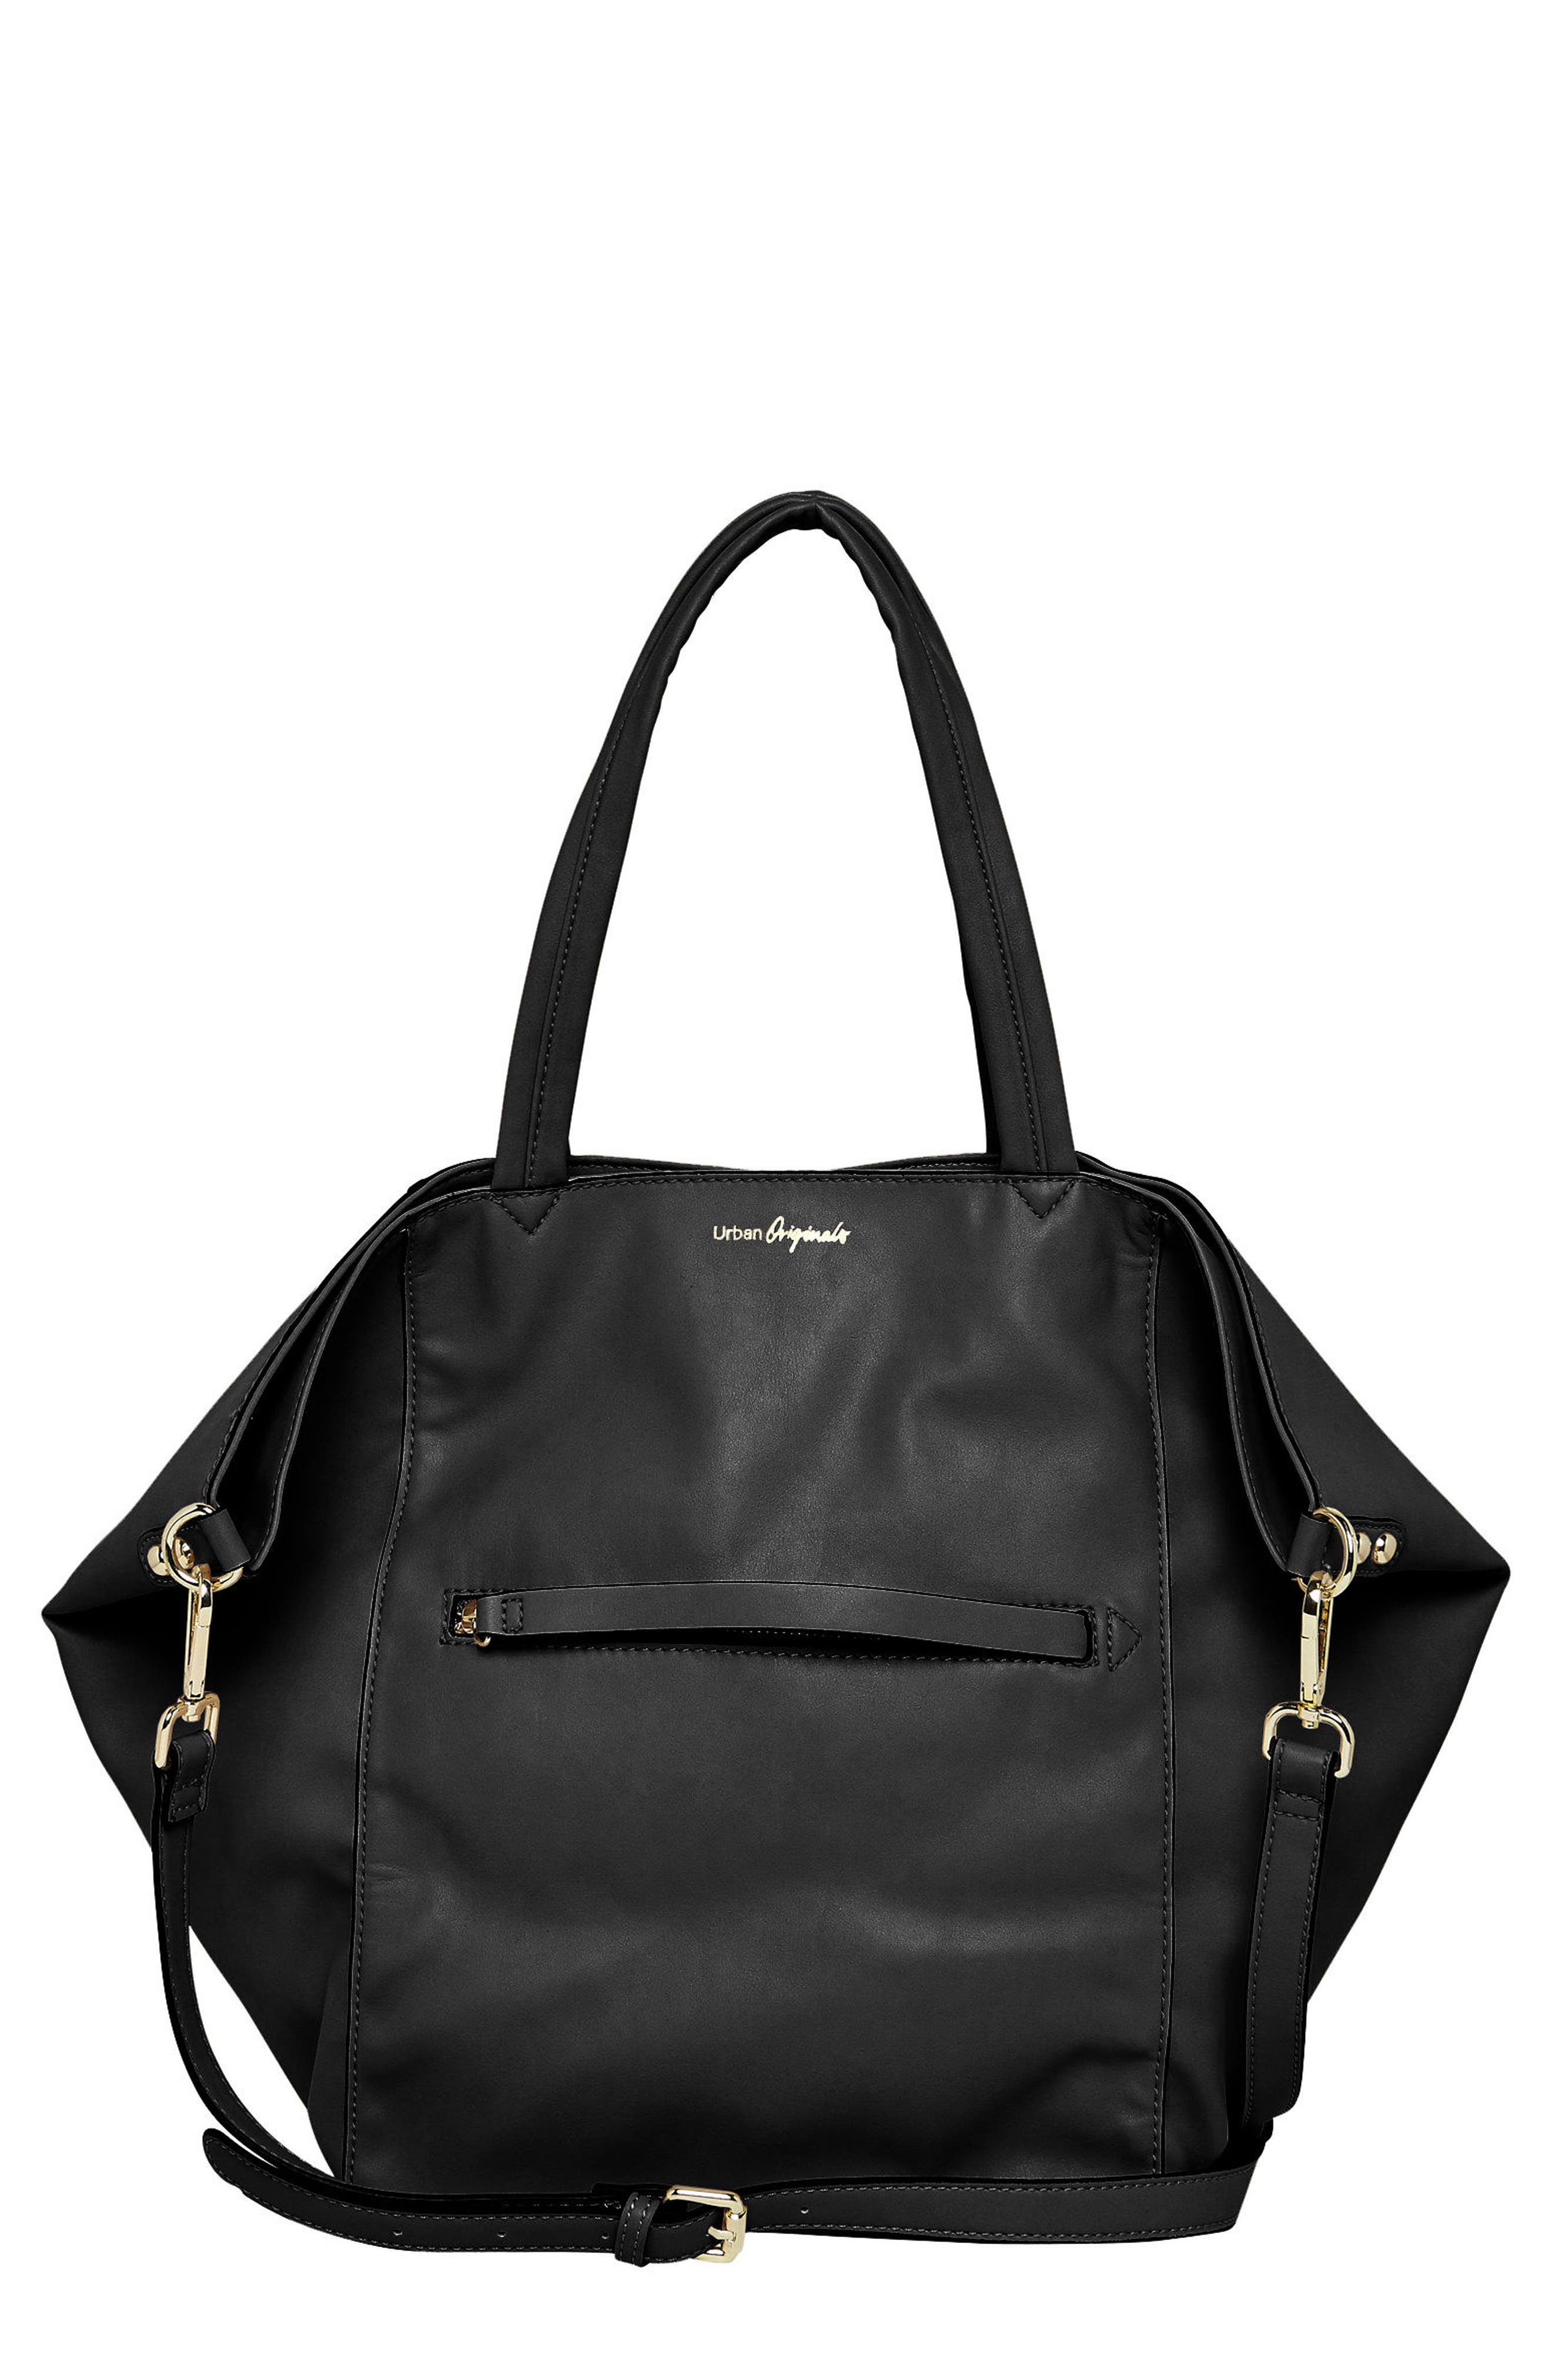 Every Girl Vegan Leather Tote,                             Main thumbnail 1, color,                             001